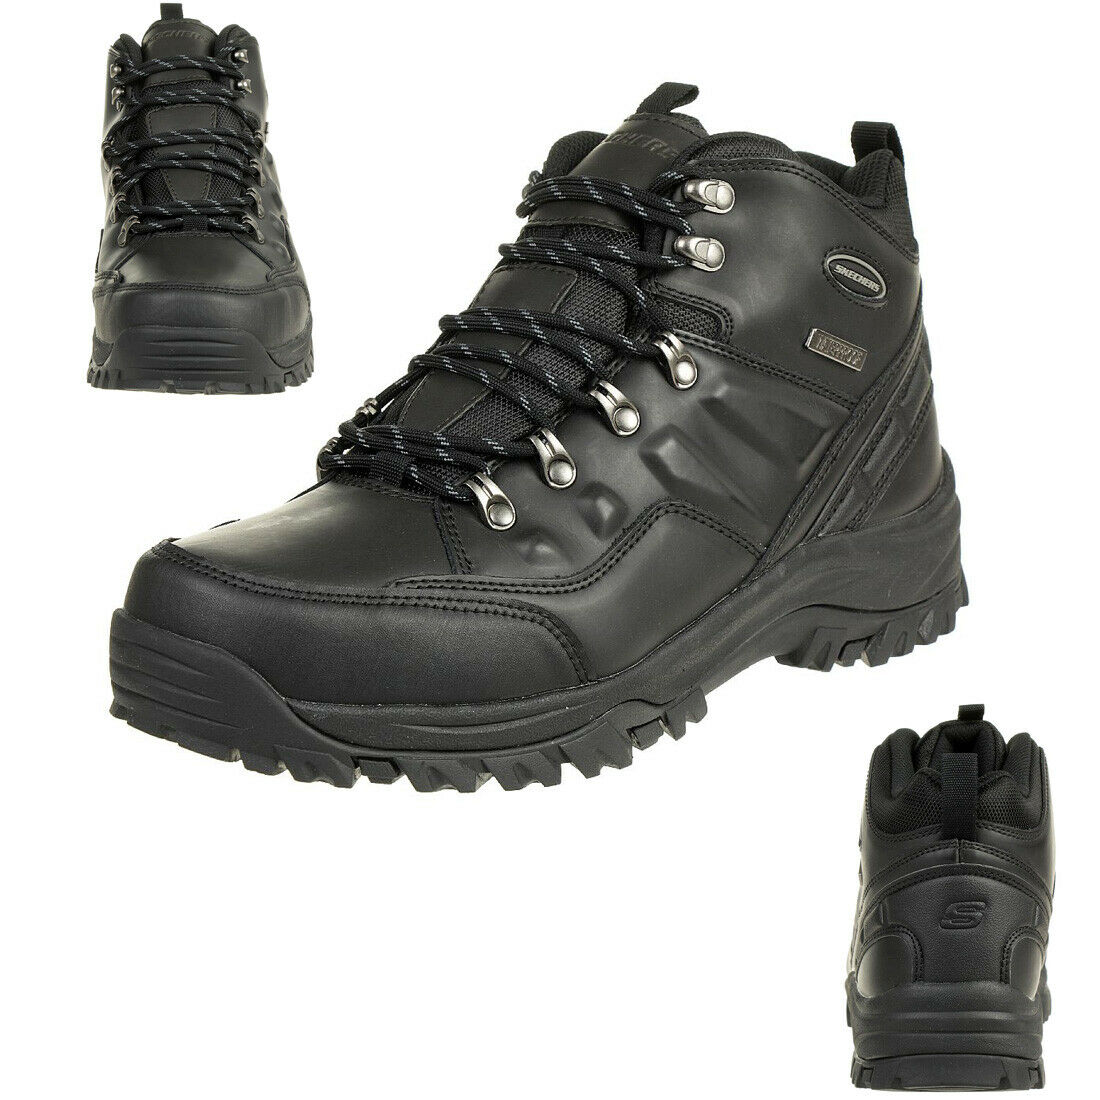 Skechers relment Traven botas outdoor Zapatos Cuero waterproof Relaxed Fit bbk